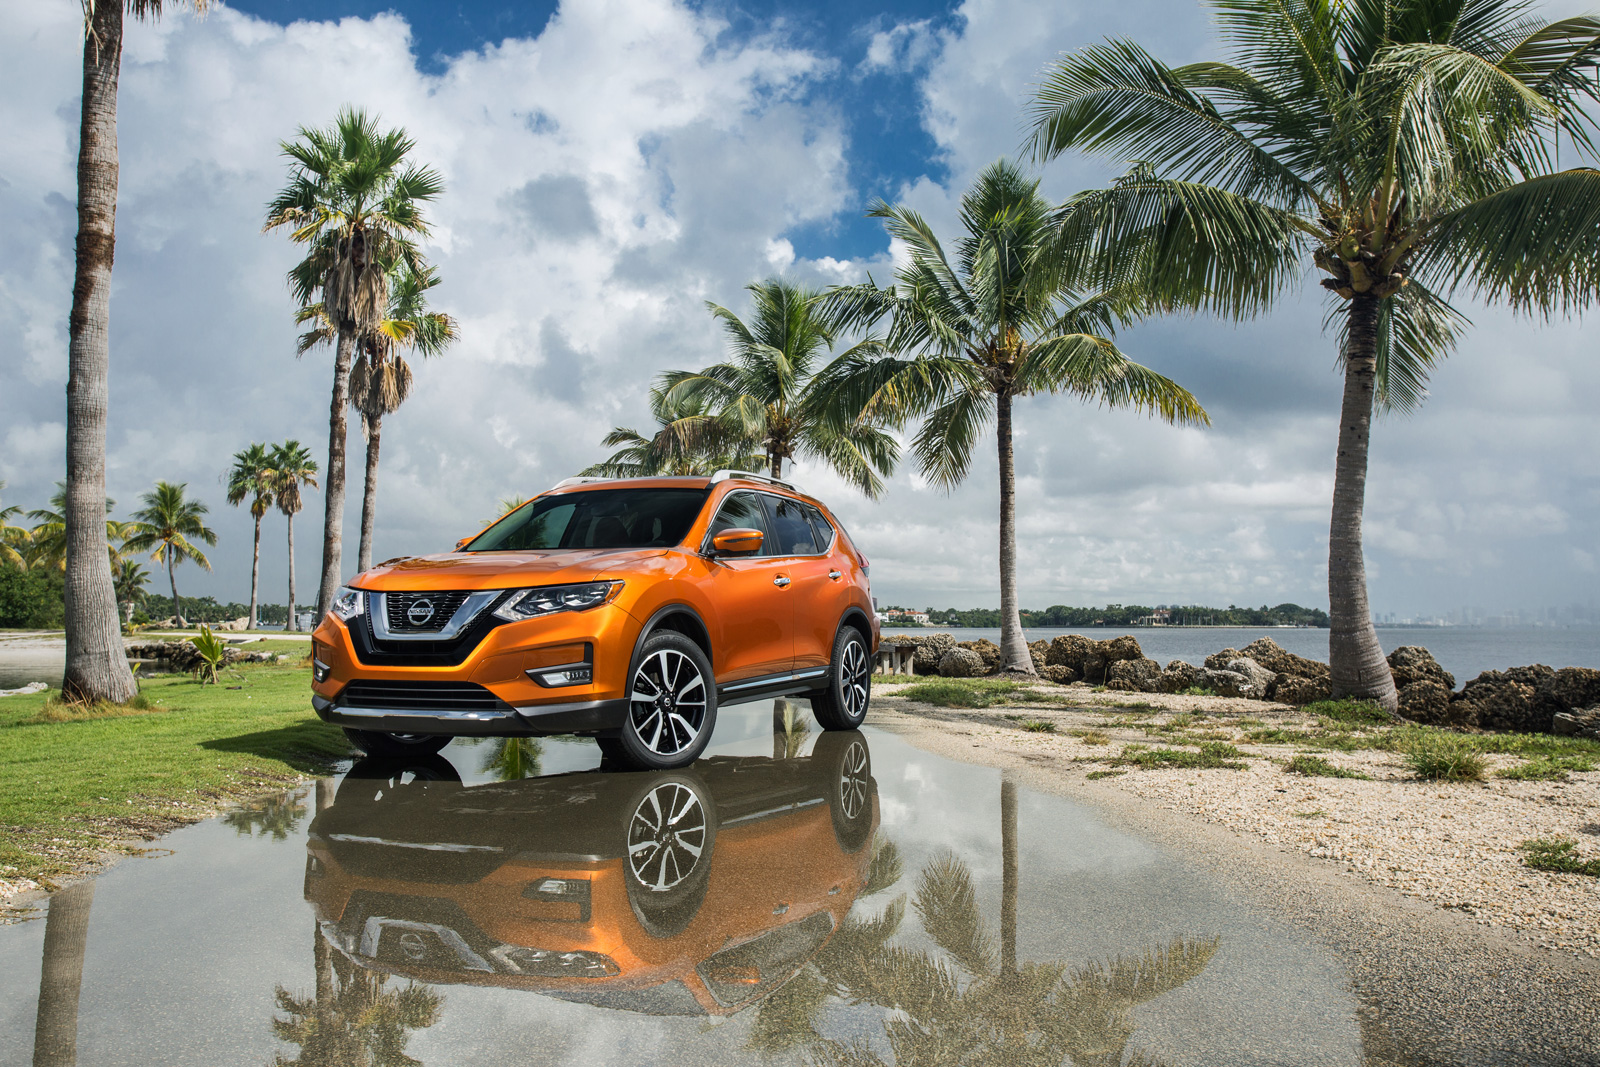 2017nissanroguestarwdition018 2017nissanroguestarwdition019 2017nissanroguestarwdition020 2018 Nissan Rogue